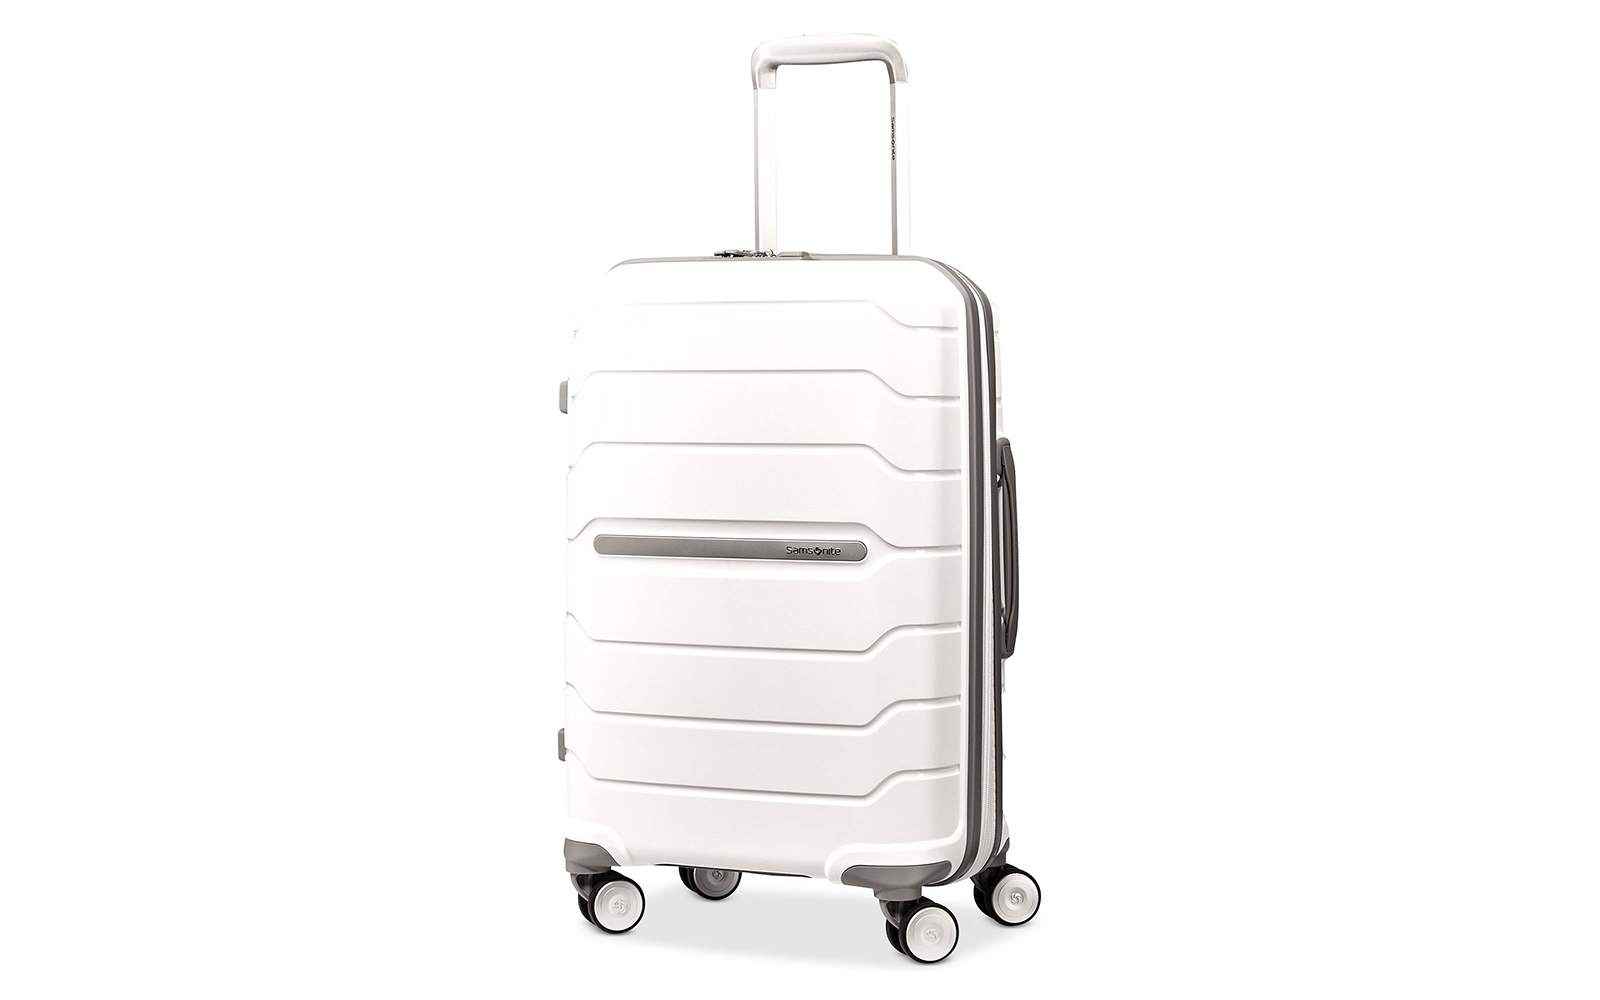 Samsonite Freeform 21  Carry-On Expandable Hardside Spinner Suitcase